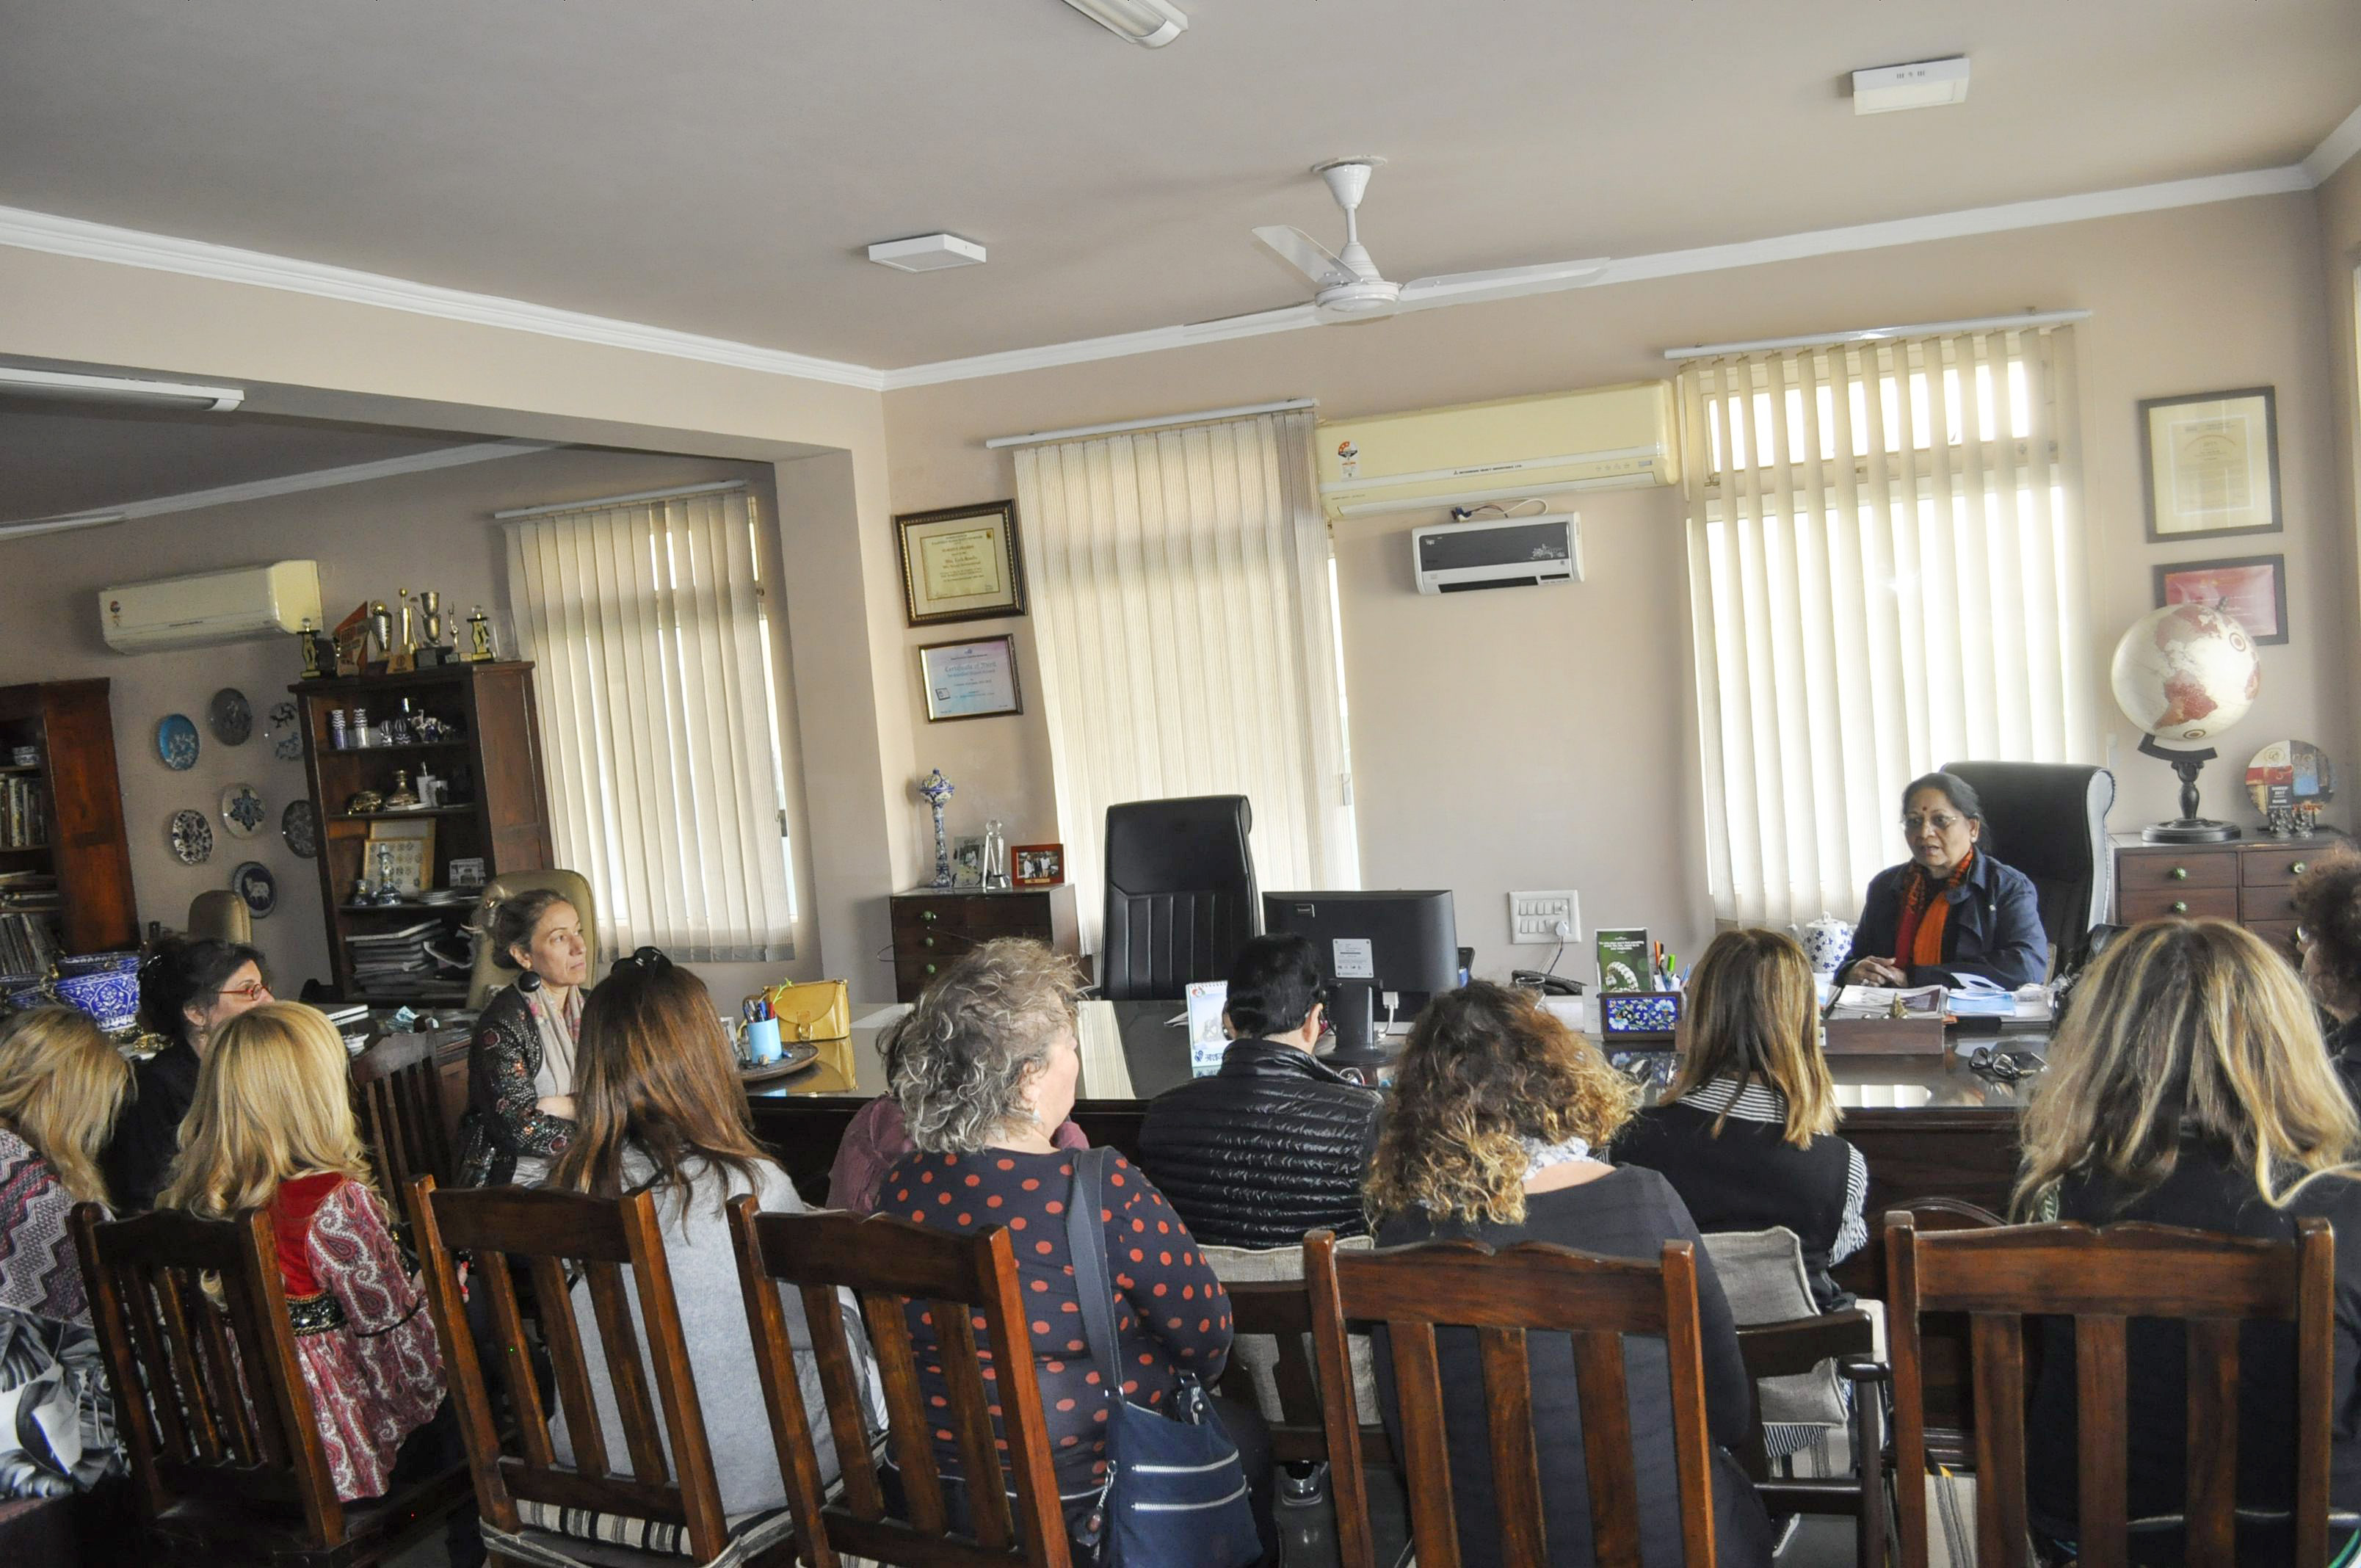 The ladies had an interactive session with Ma'am Leela Bordia